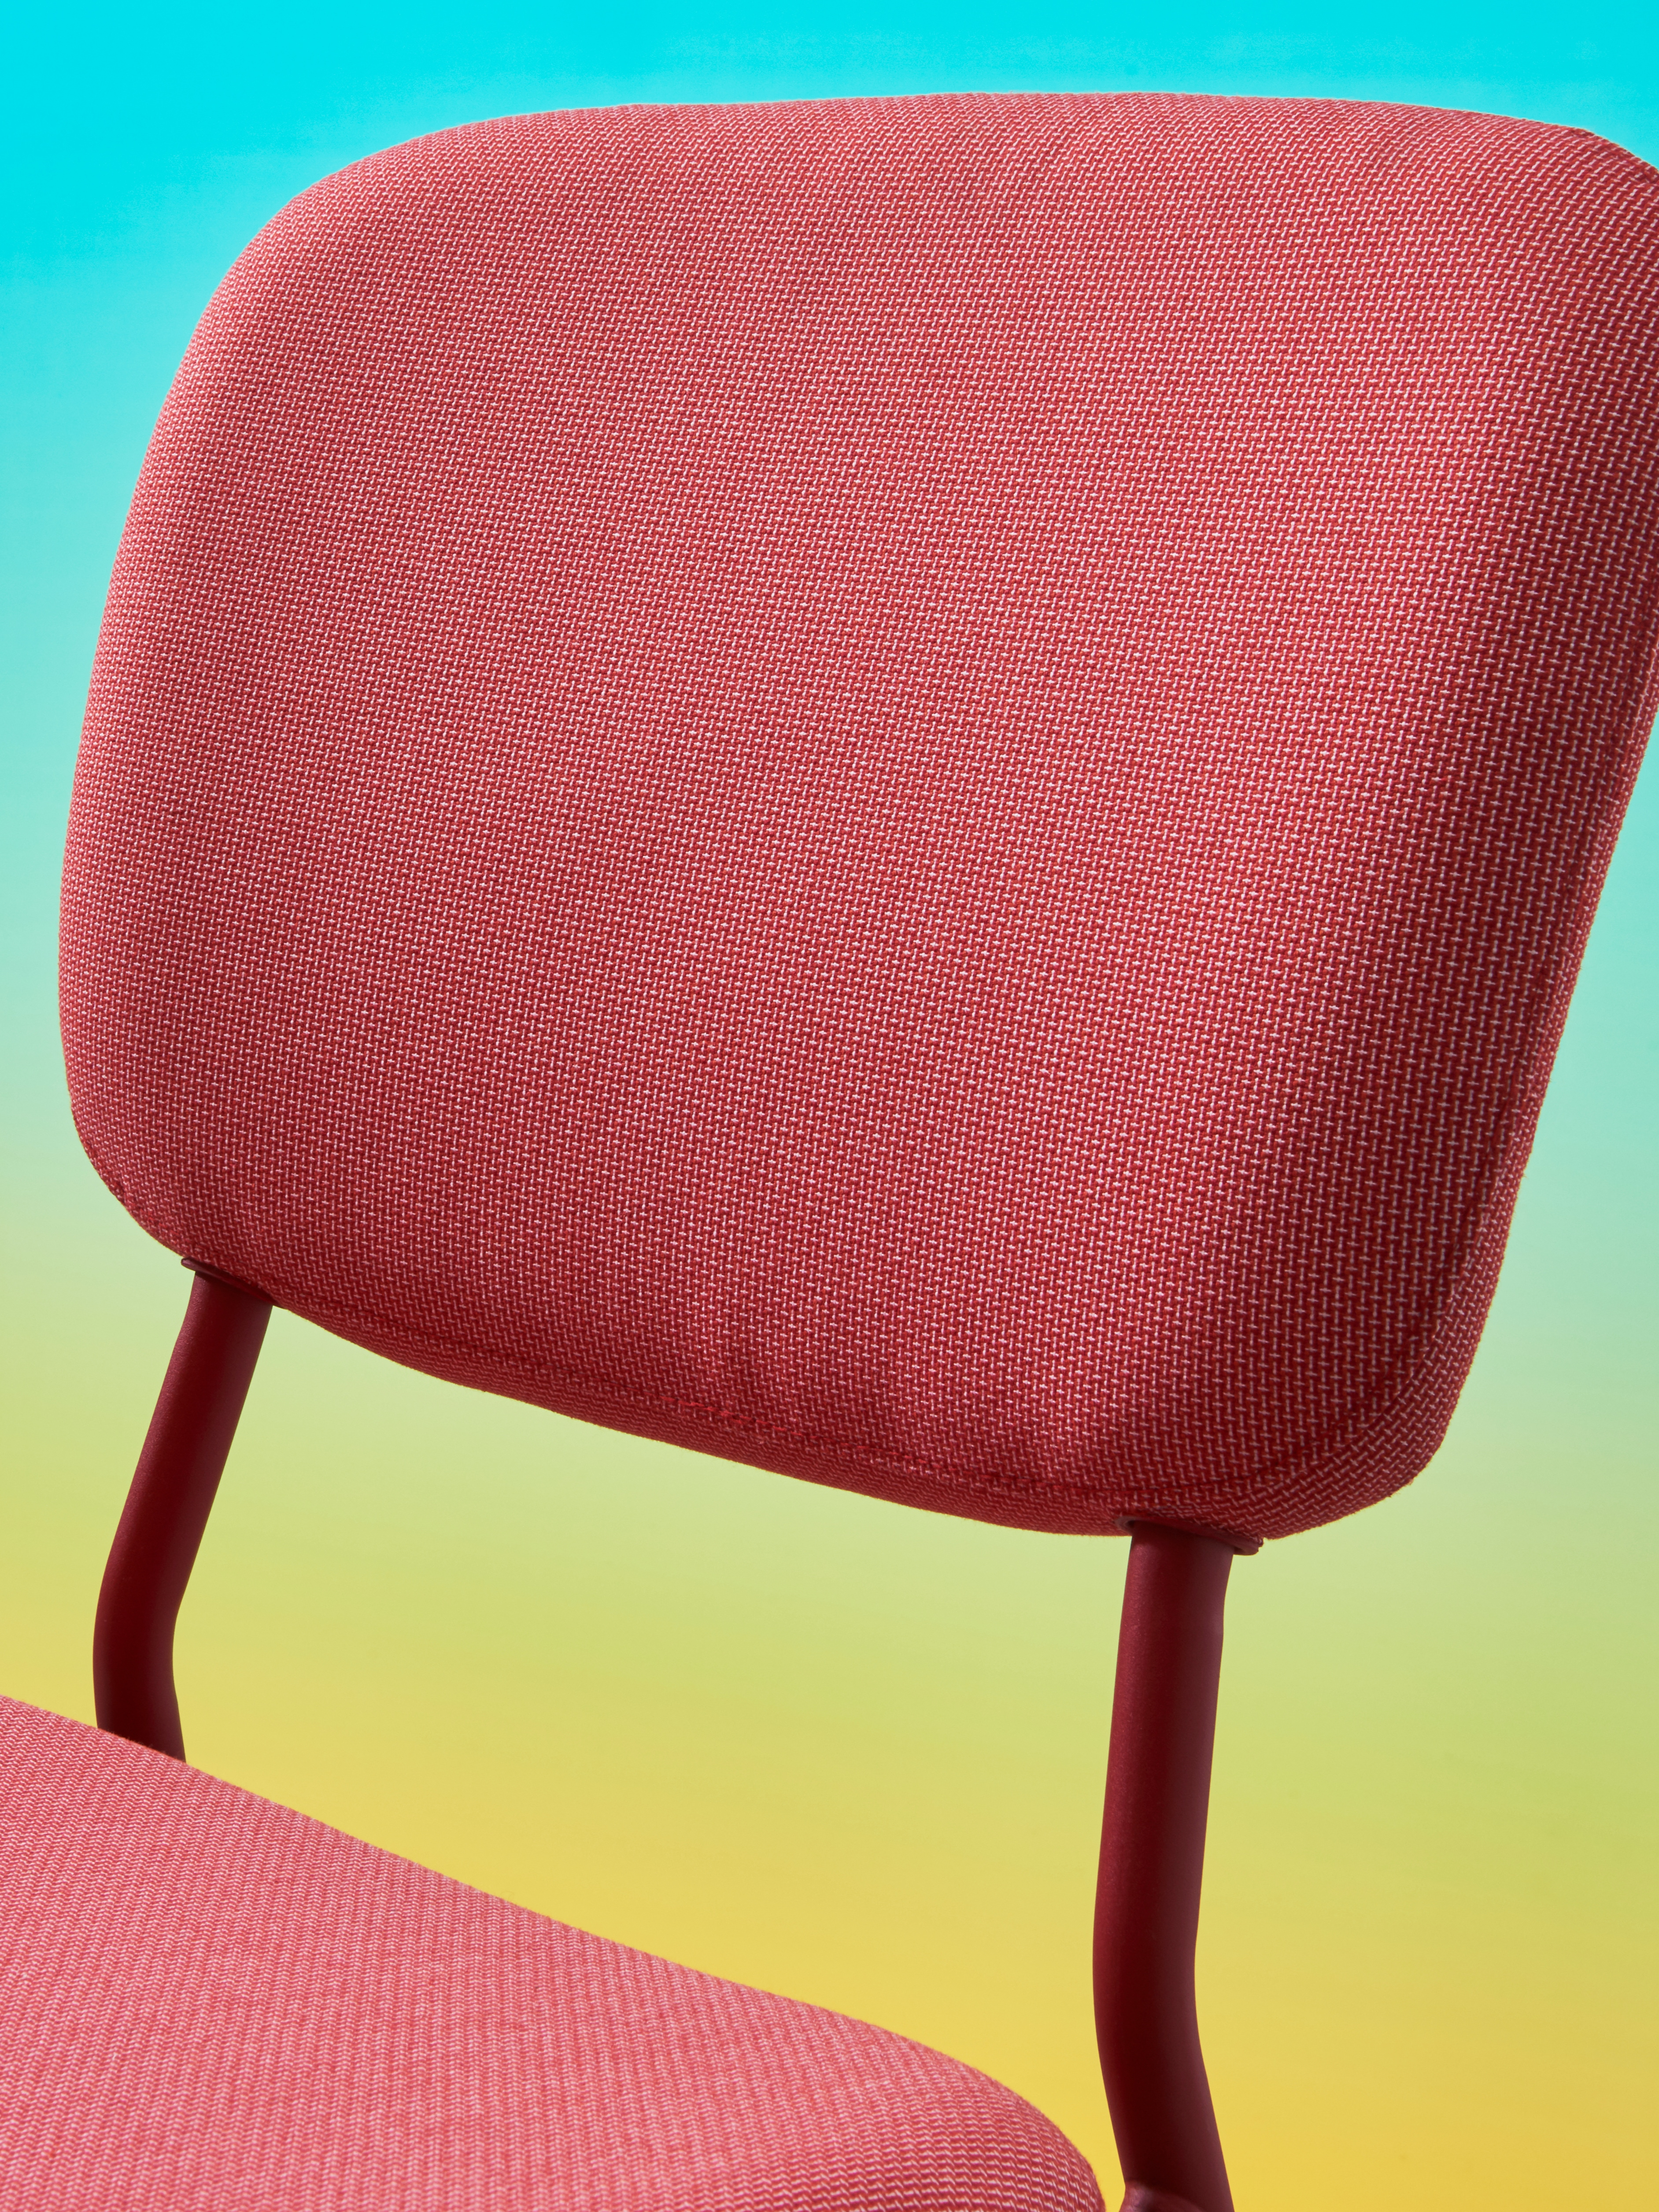 Close-up of a KARLJAN chair in red, against a blue and yellow background, showing the upholstered backrest and metal frame.